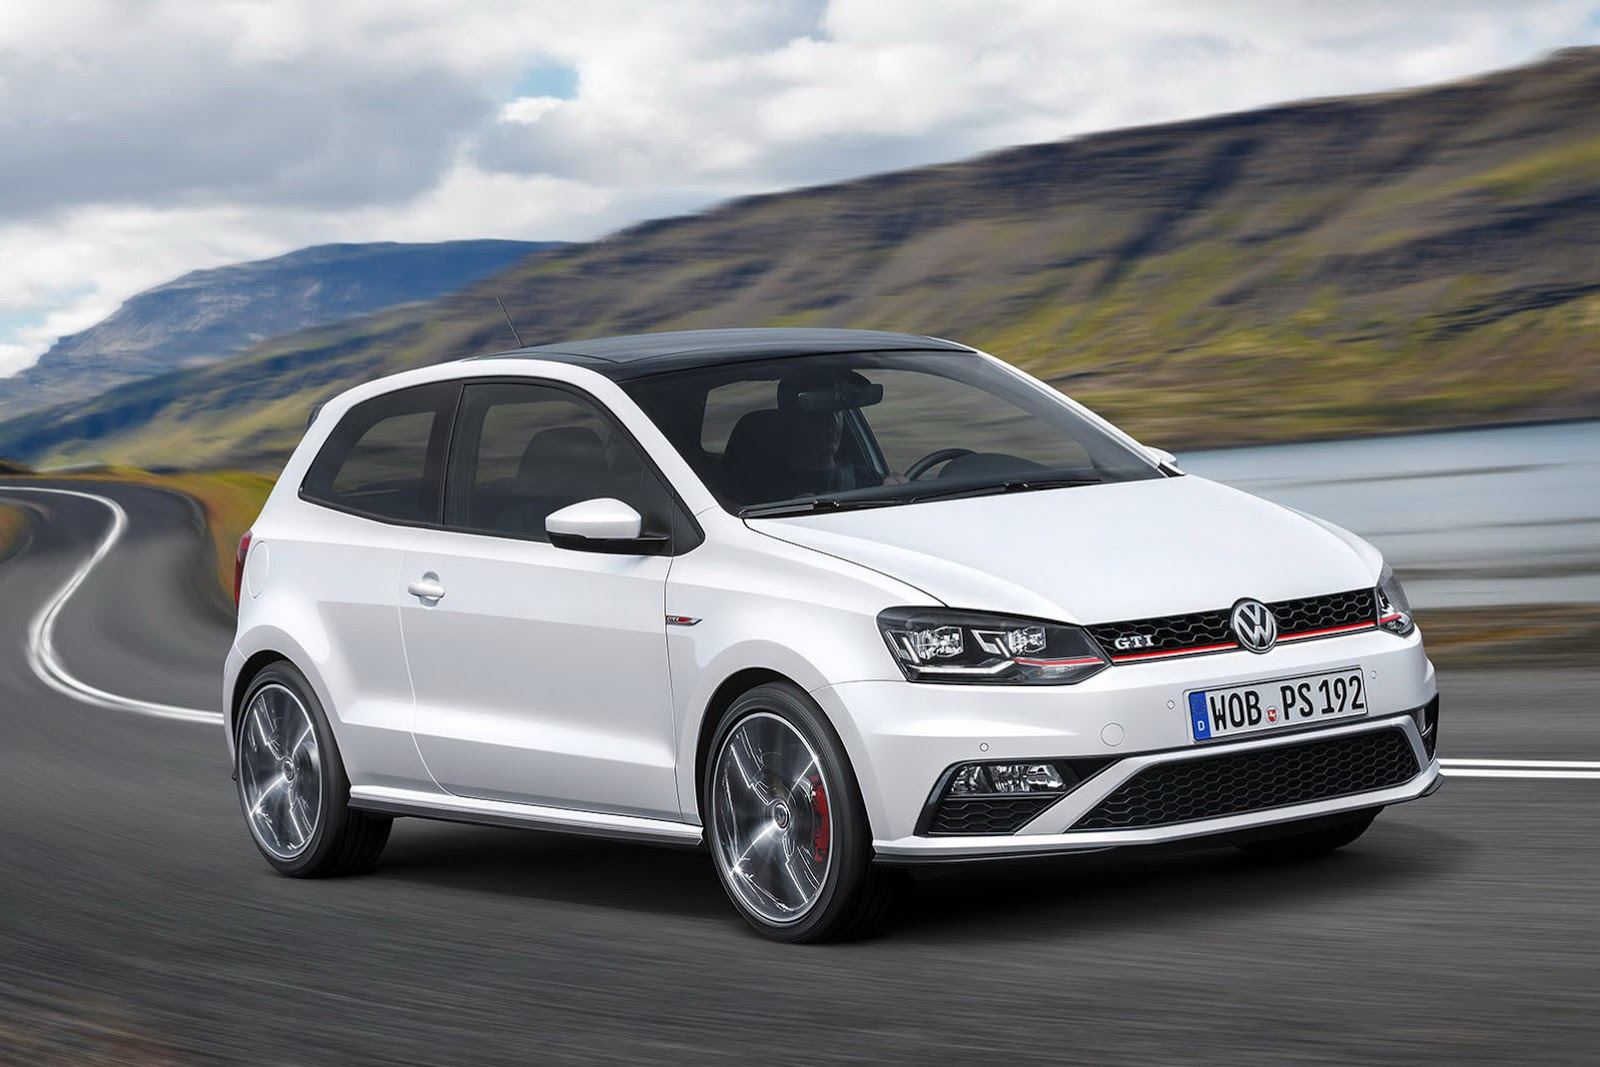 Used volkswagen citi alberton mitula cars - 2015 Vw Polo Gti Facelift Gets New 190ps 1 8l Turbo And Manual Gearbox